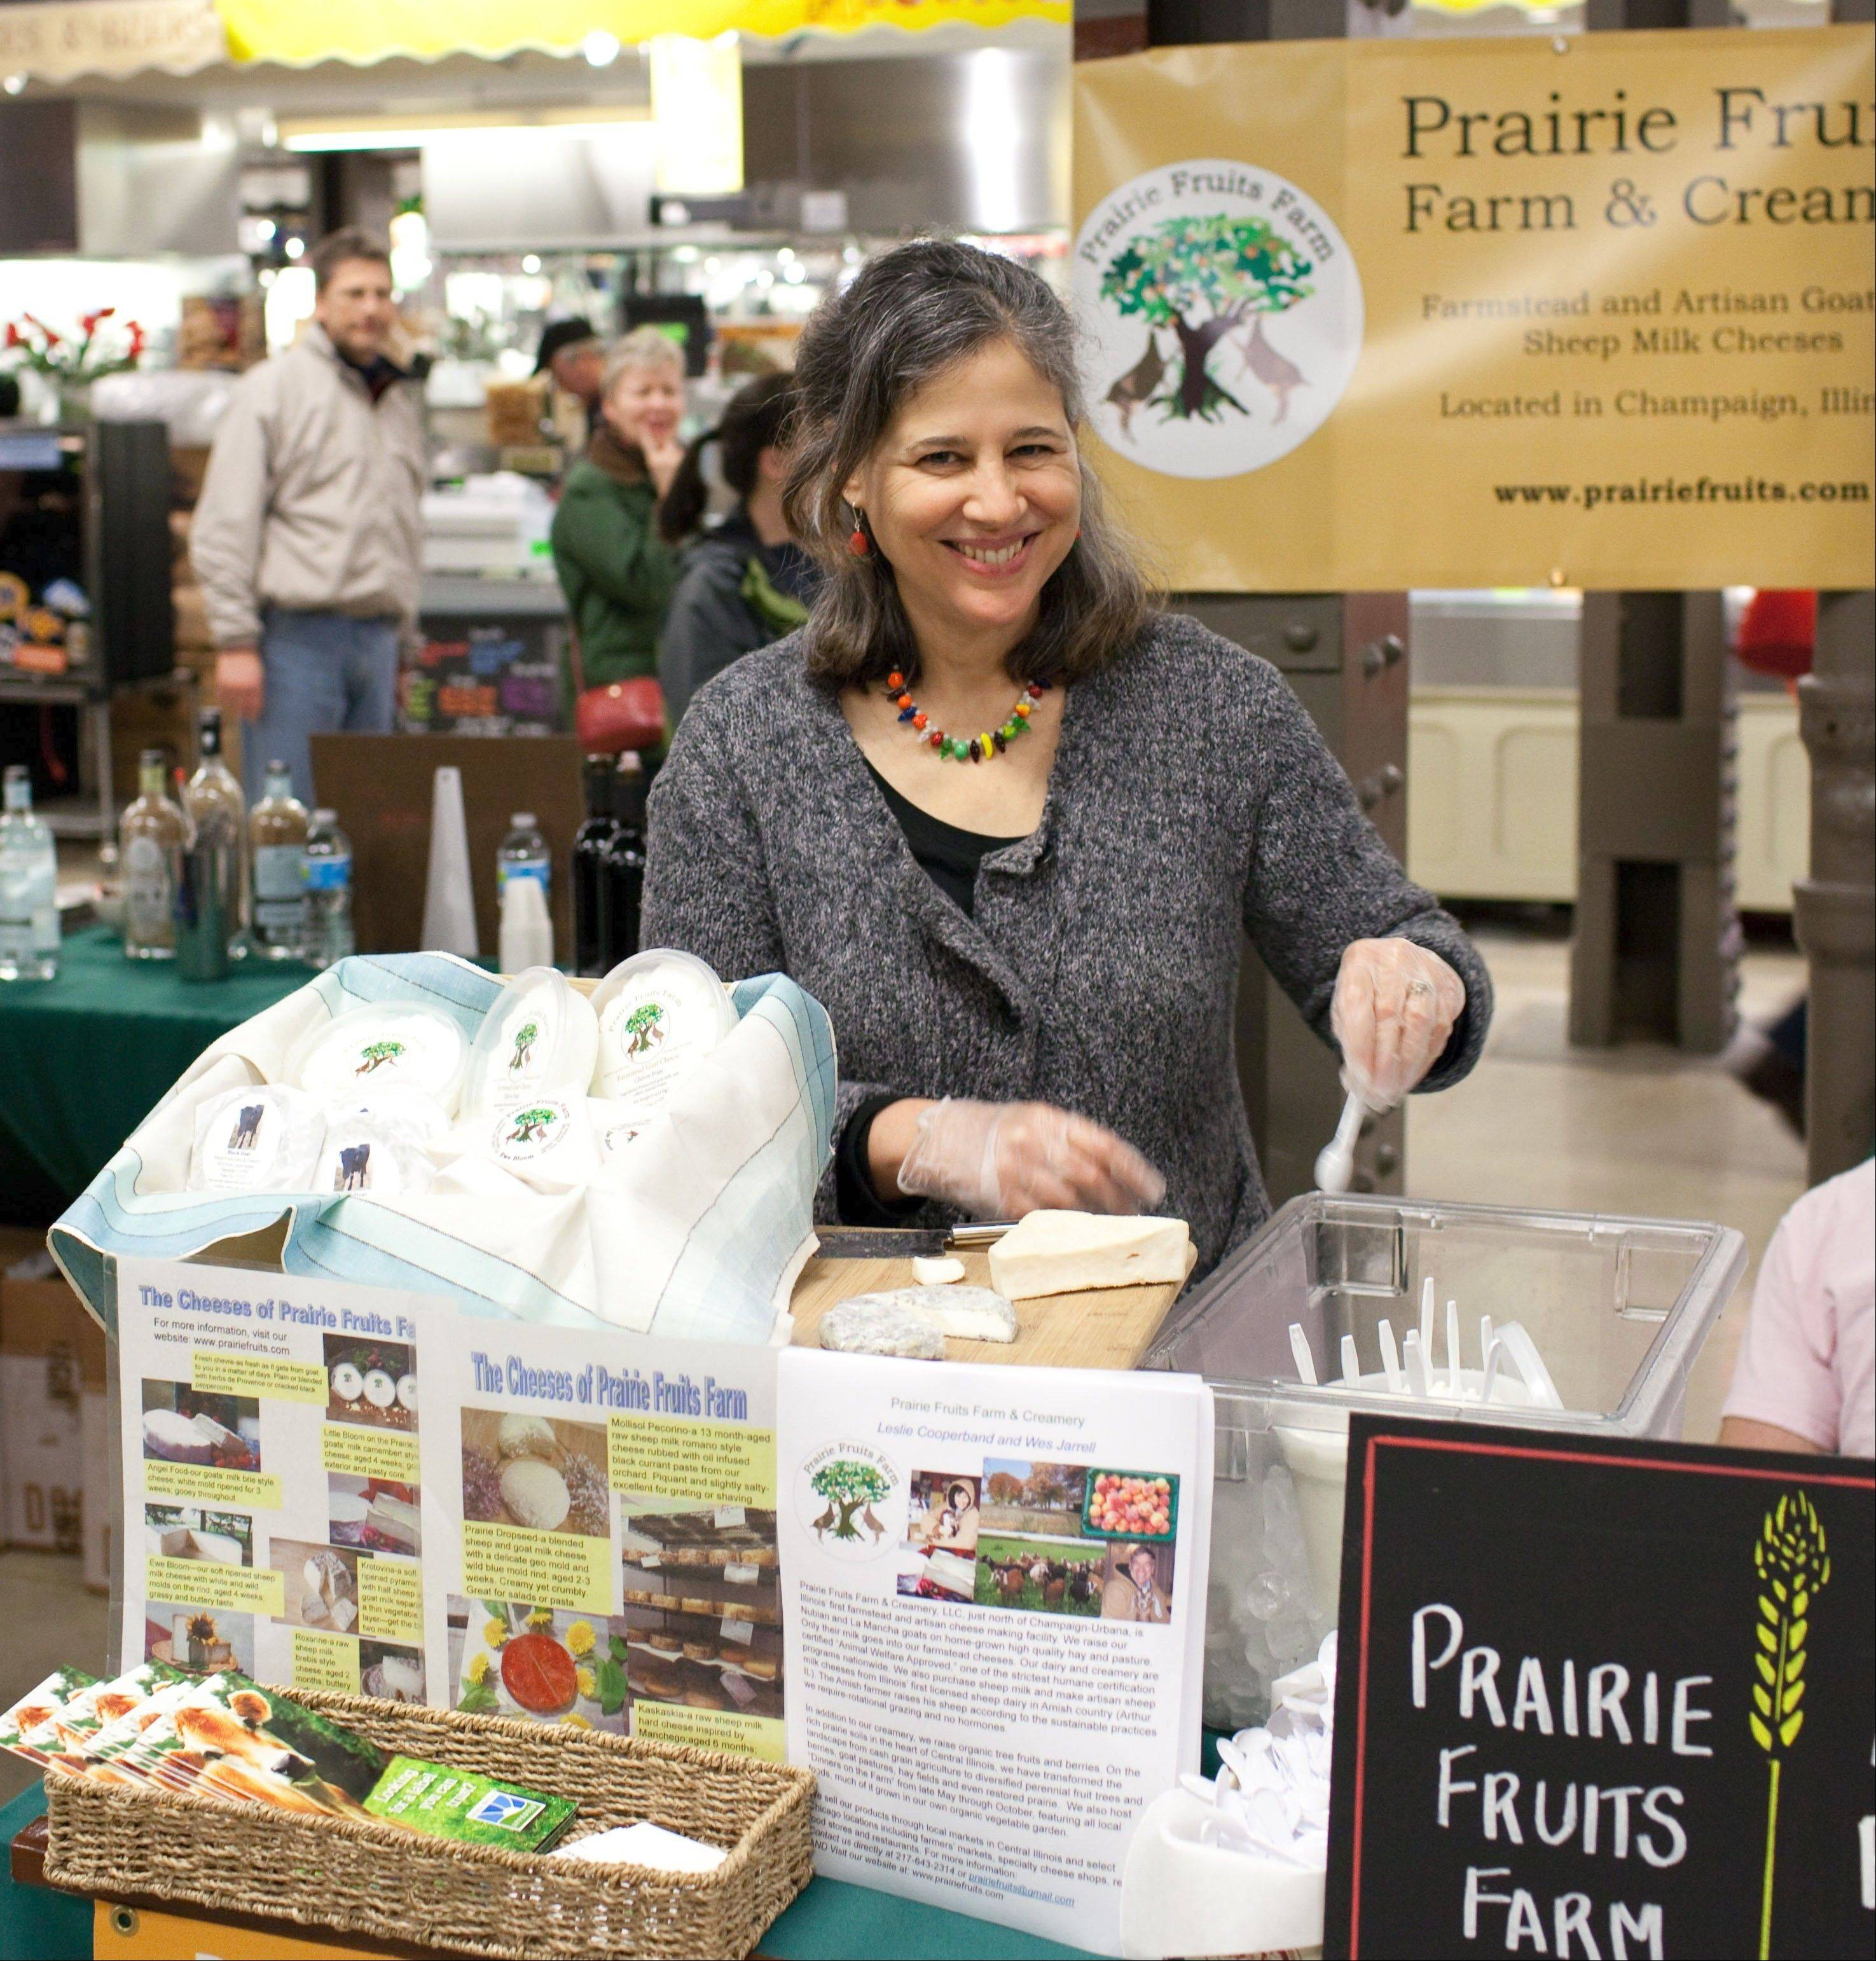 Cheesemaker Leslie Cooperband of Prairie Fruits Farm will be part of the Pastoral�s Artisan Producer Festival Saturday, April 27.